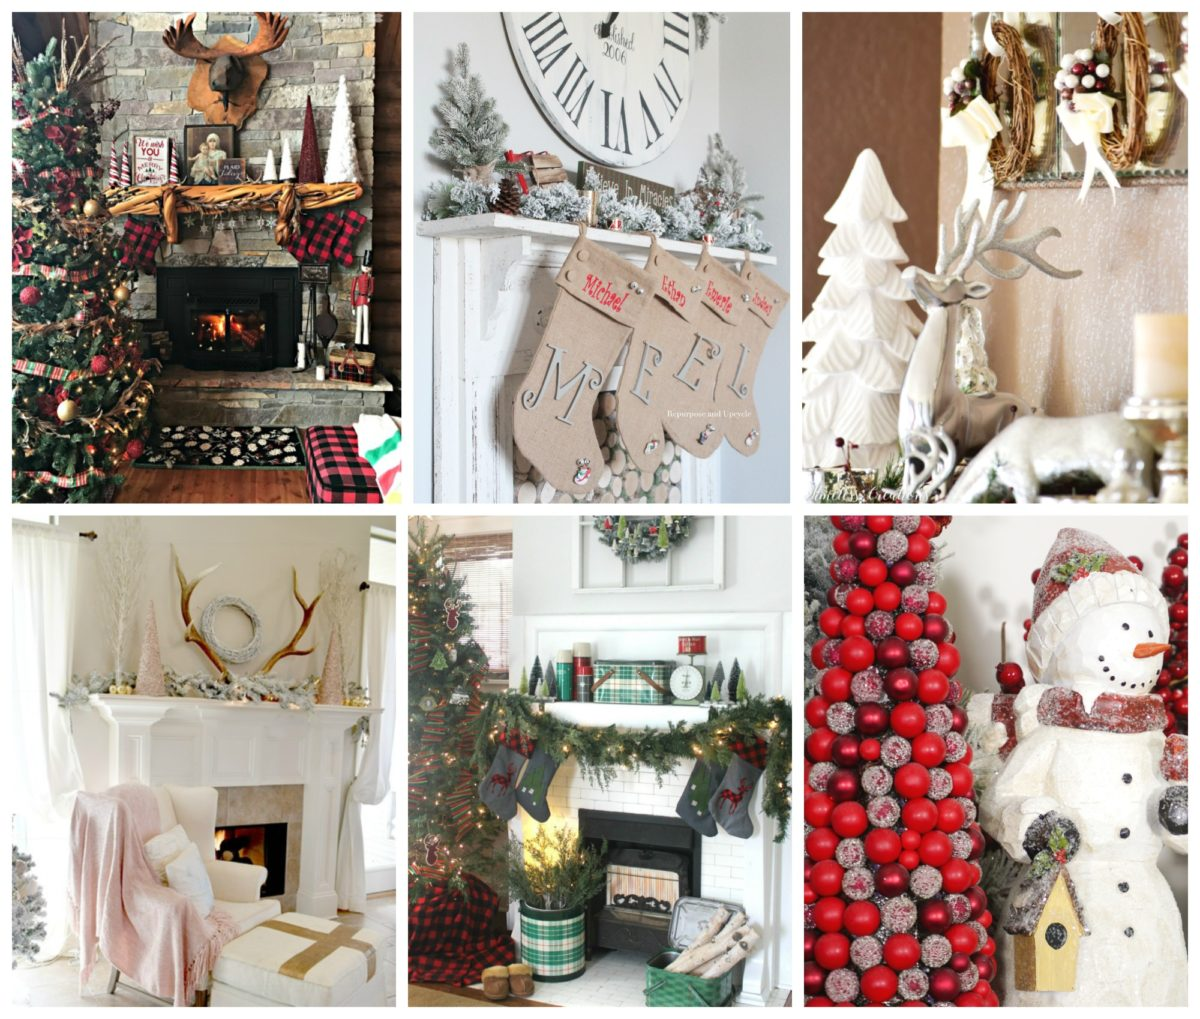 Decorating the Mantle for the Holidays - A Christmas Festival Blog Hop 17